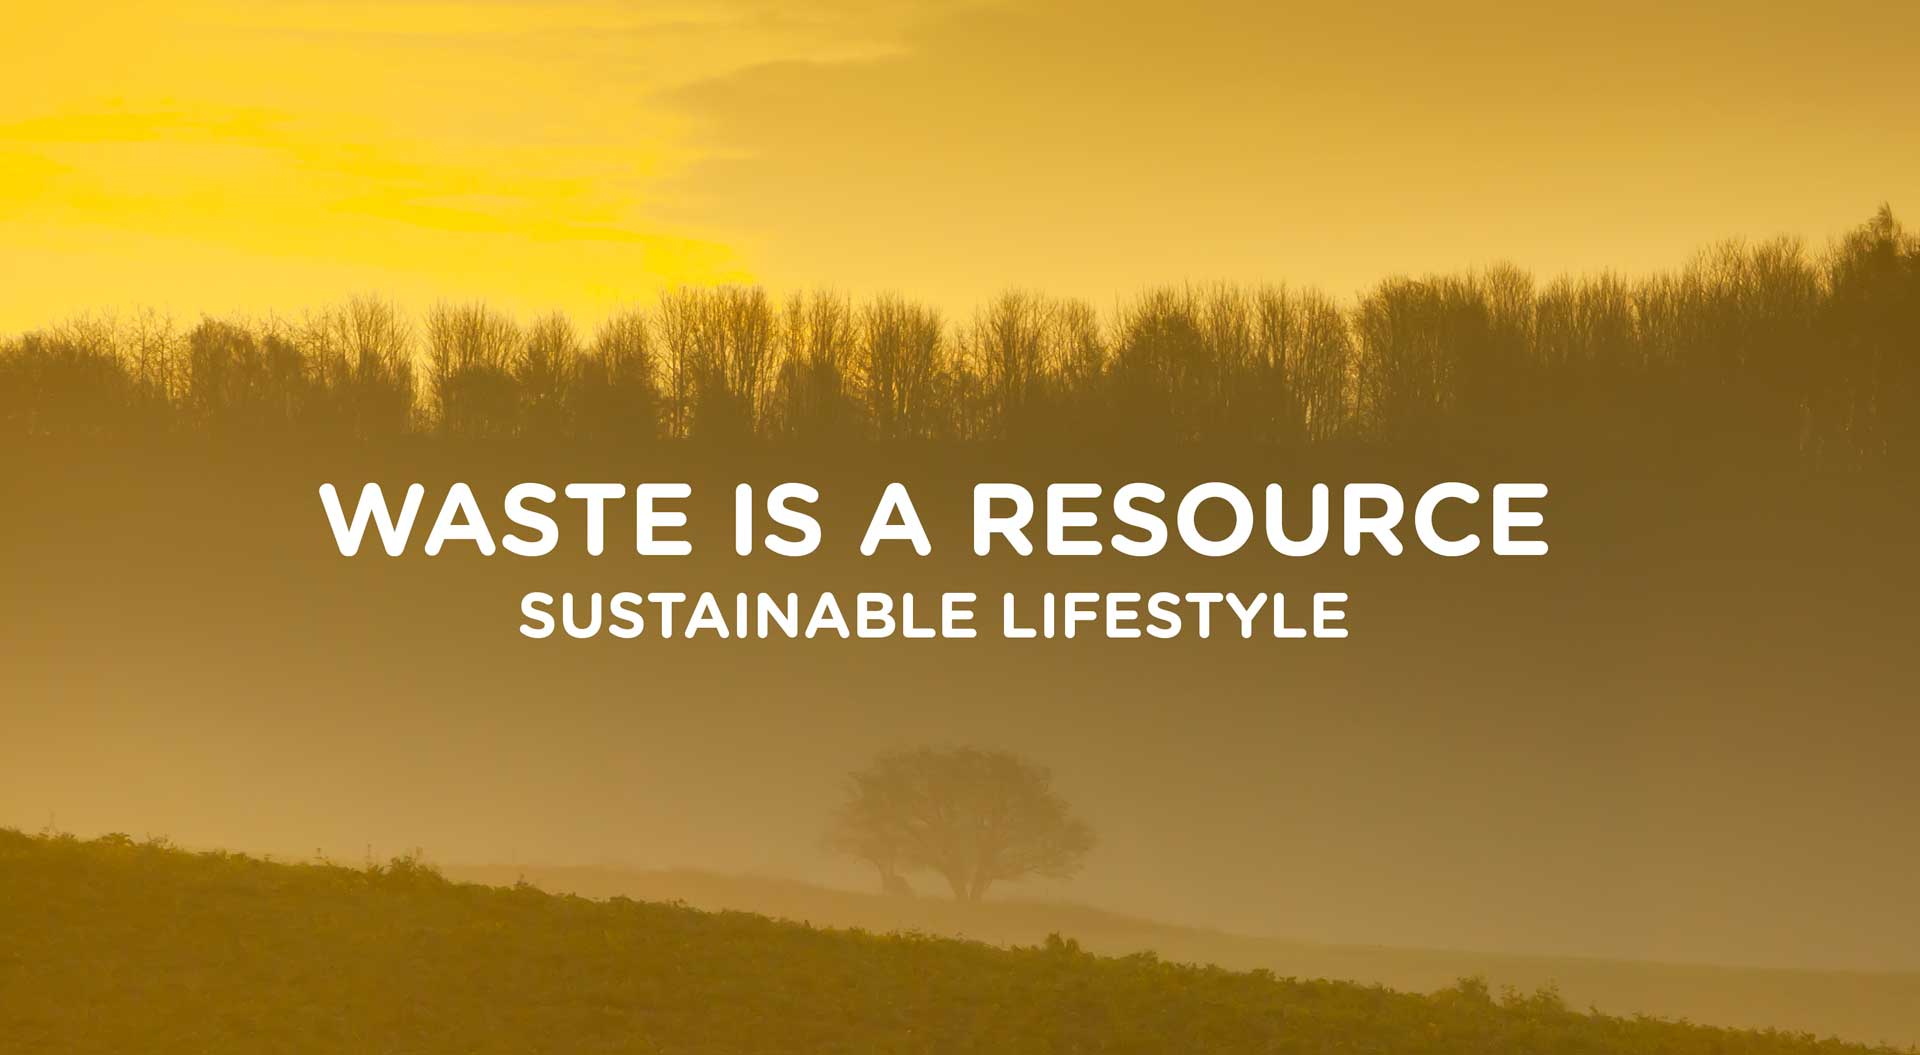 Landscape view with the text waste is a resource - sustainable lifestyle